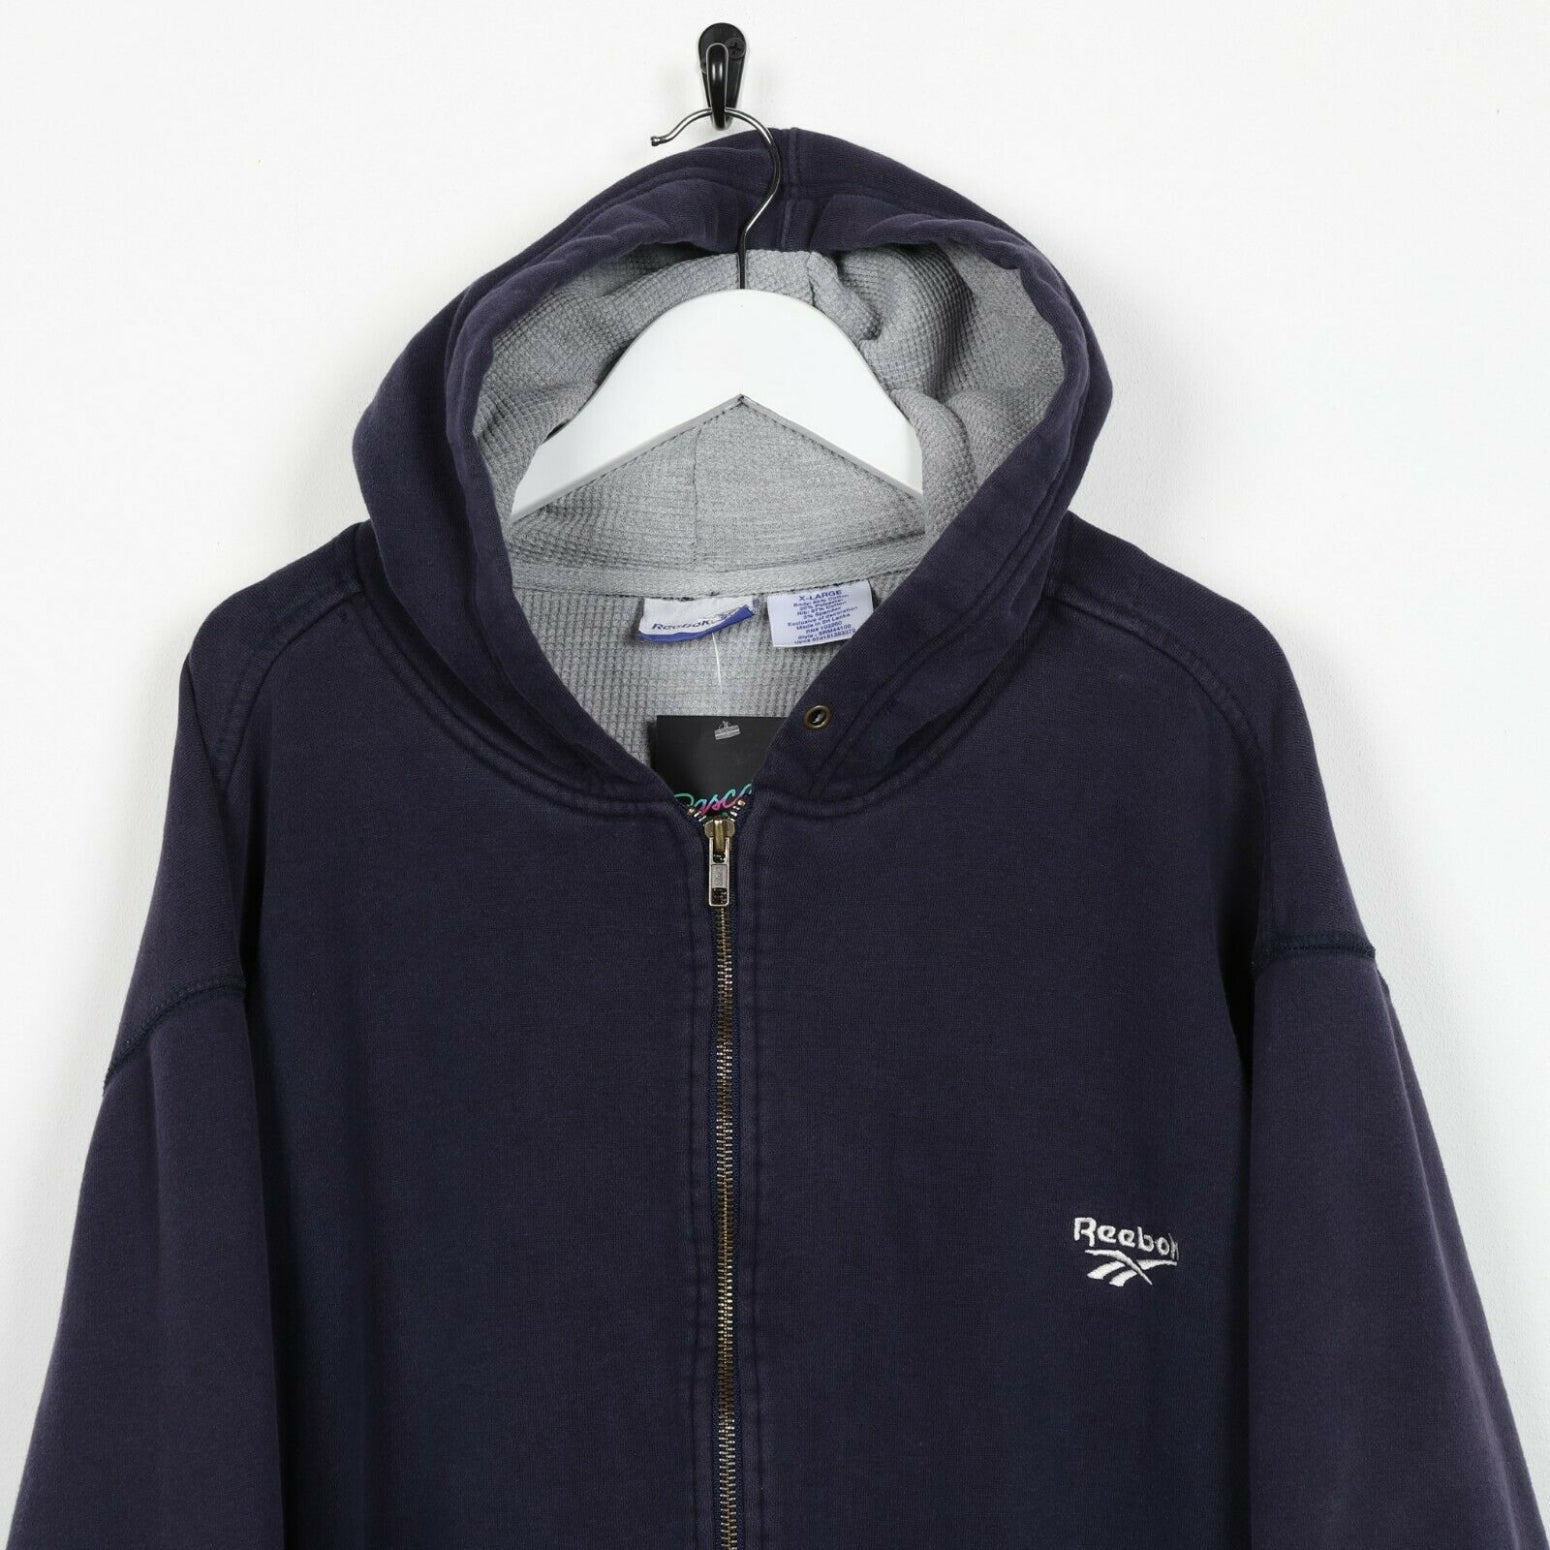 Vintage REEBOK Small Logo Zip Up Hoodie Sweatshirt Navy Blue XL